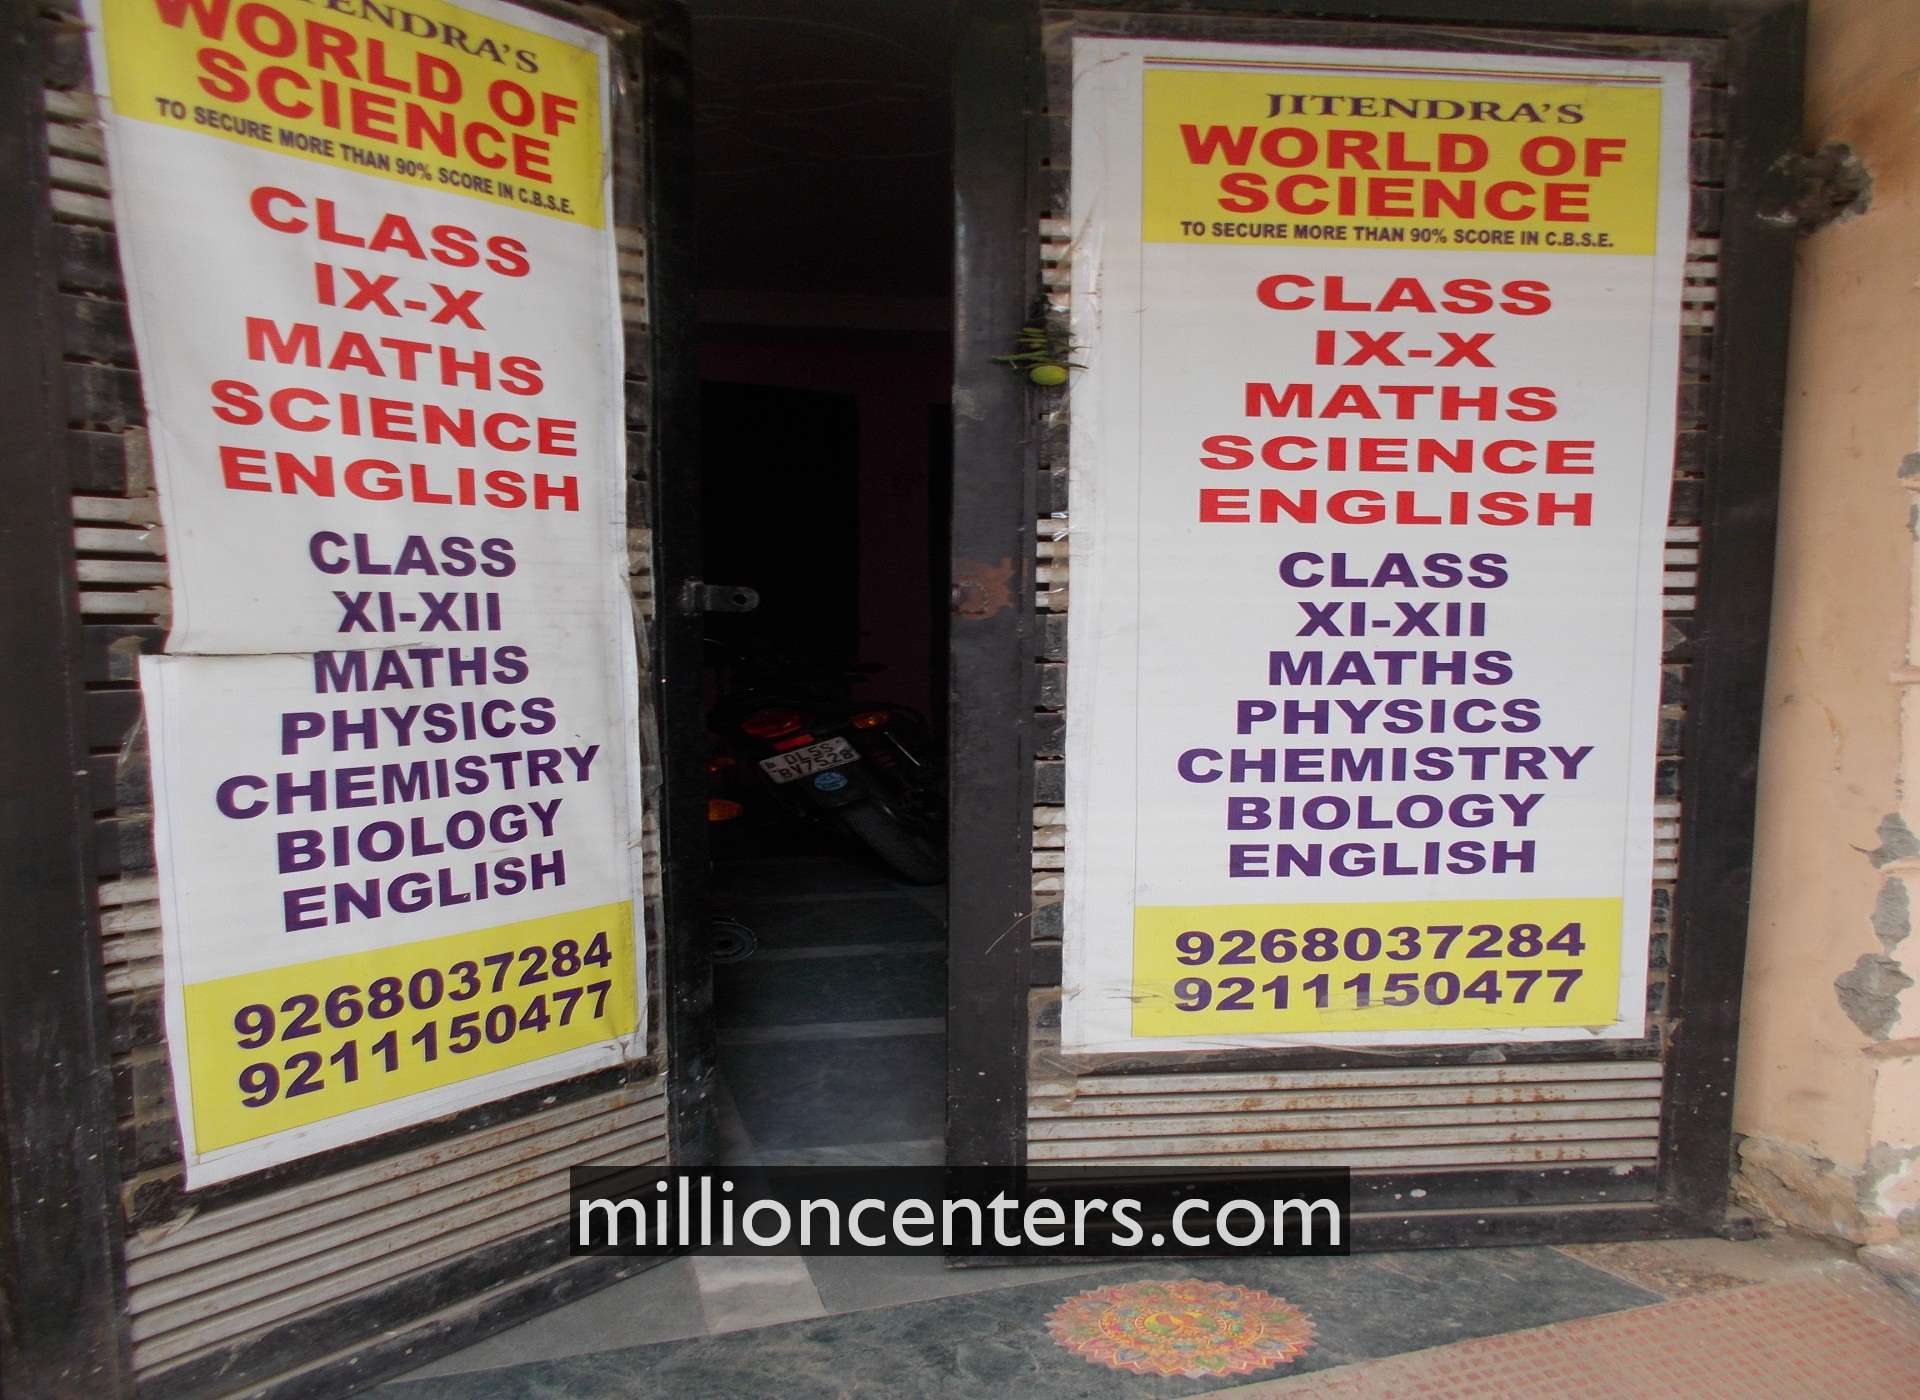 Jitendra's World of Sciences in Janakpuri